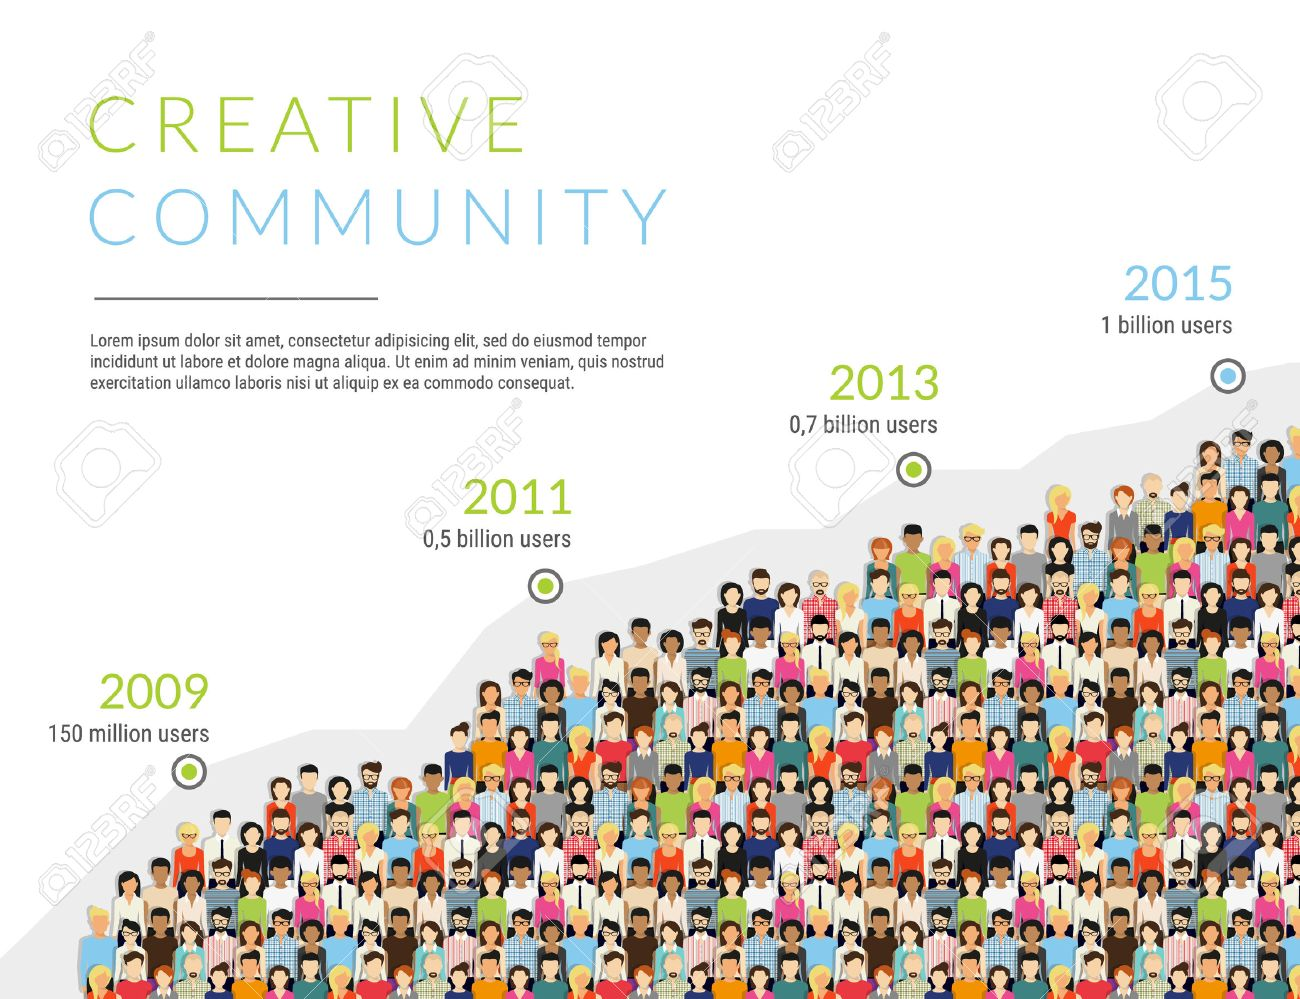 Group of creative people for presentation of community membership or world people population. Flat modern infographic illustration of community members growth timeline isolated on white background - 56697884